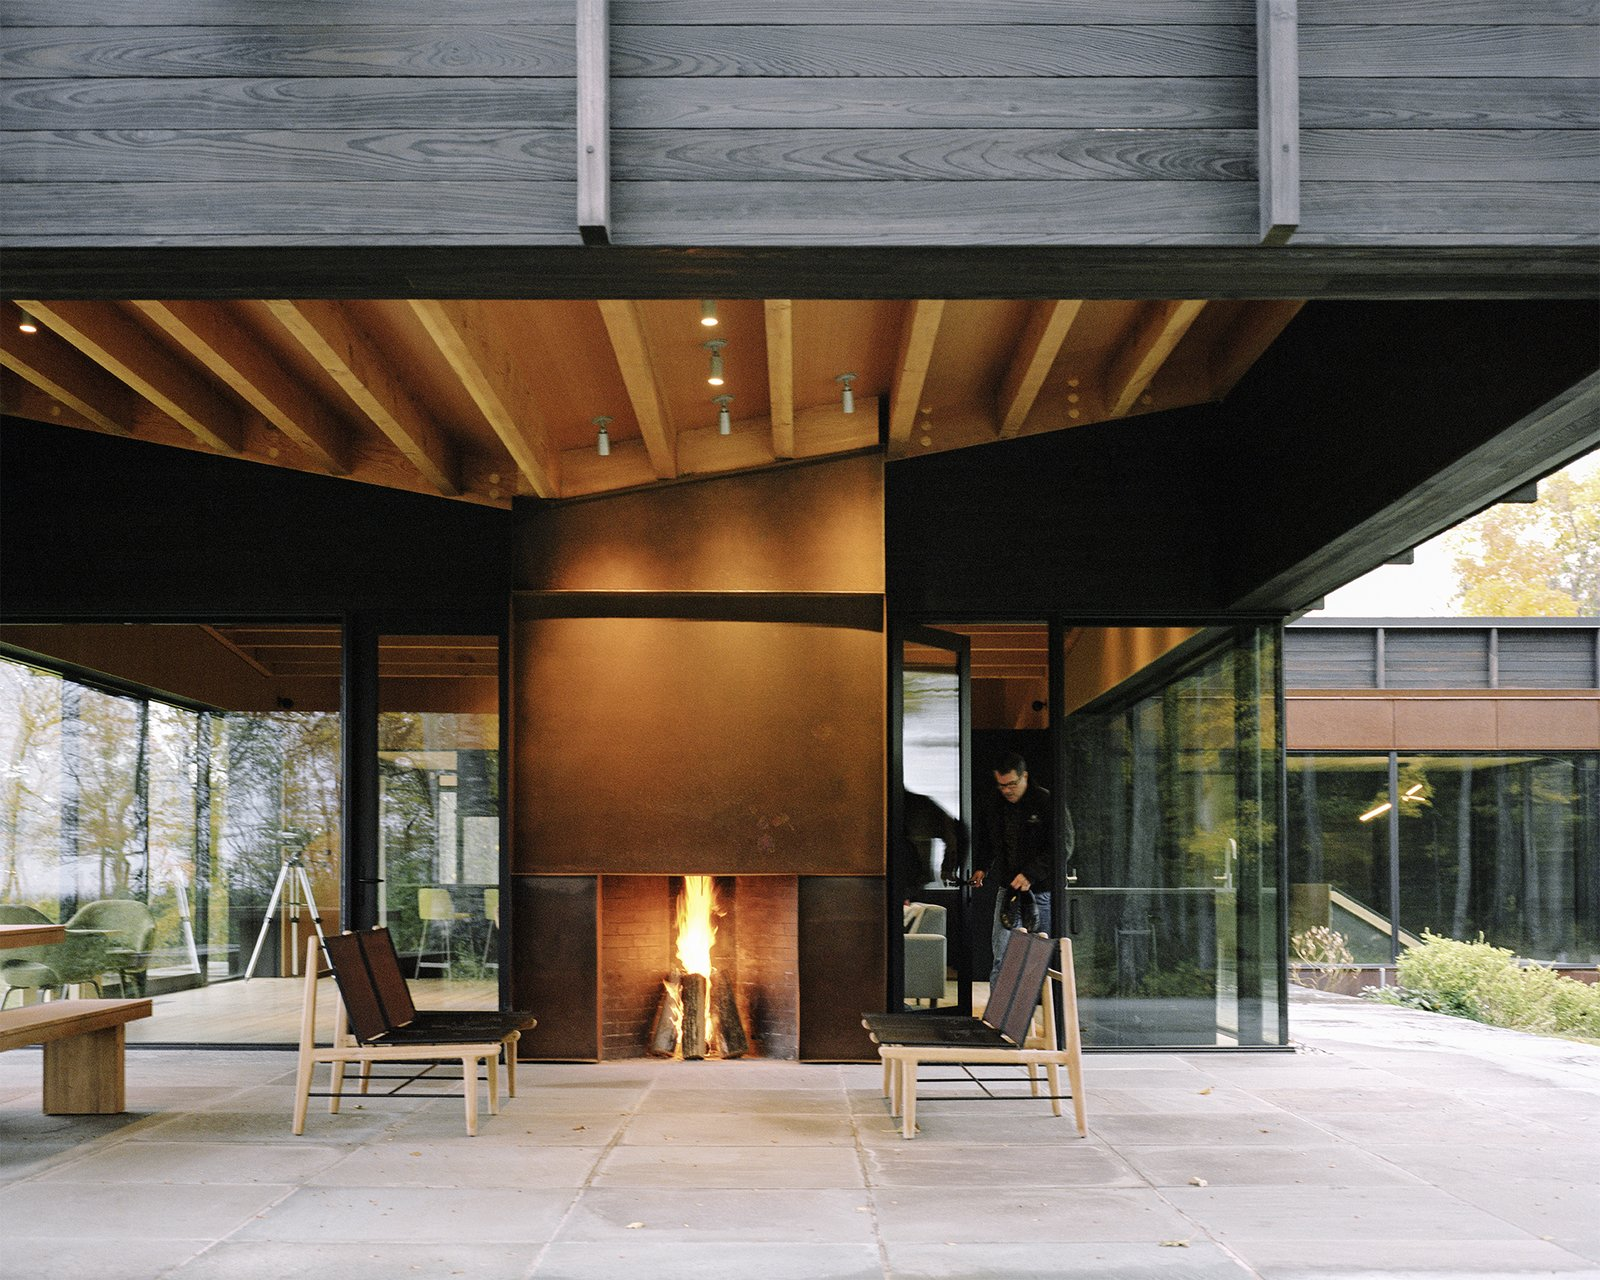 Outdoor, Back Yard, Large Patio, Porch, Deck, and Shrubs The home's undulating roof, composed of exposed wood beams and plywood sheathing, references the rolling terrain. A Cor-Ten steel–clad outdoor fireplace was built by BRD Construction; the same material was used for the interior fireplace, as surround on some windows, as cladding for the garage door, and on the chimney. The lounge chairs are from the Finn Collection from Design Within Reach. Tim Kirby of Surface Design Inc. tackled  the site's landscape architecture. - Leelanau County, Michigan Dwell Magazine : September / October 2017  Photos from Plagued Ash Trees Were Repurposed to Create This Charred Cedar–Clad Home on Lake Michigan